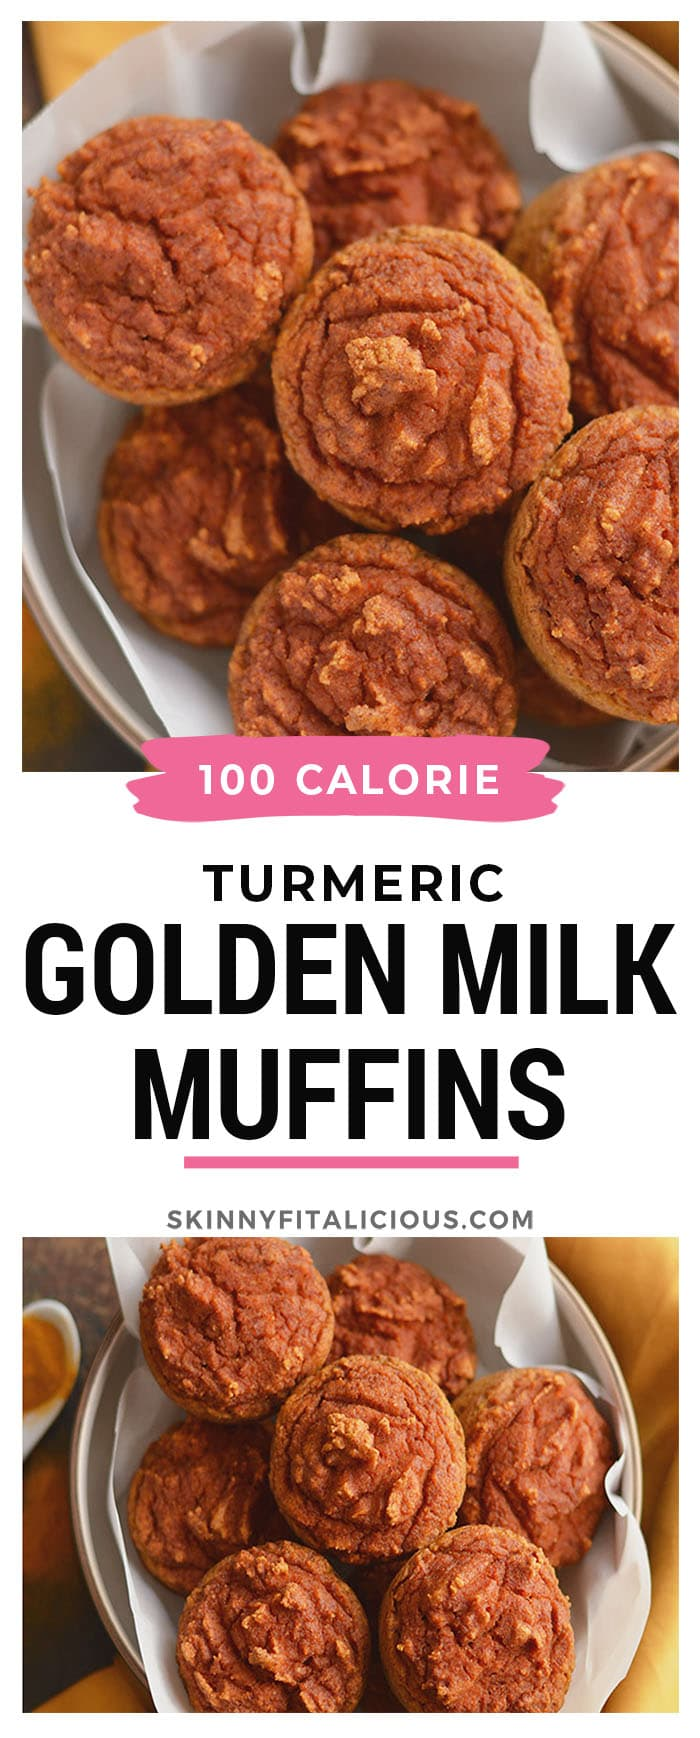 Healthy Turmeric Muffins made with golden milk! A creamy grain-free treat lightly sweetened with a subtle kick of spice and only 110 calories! Paleo + Gluten Free + Low Calorie